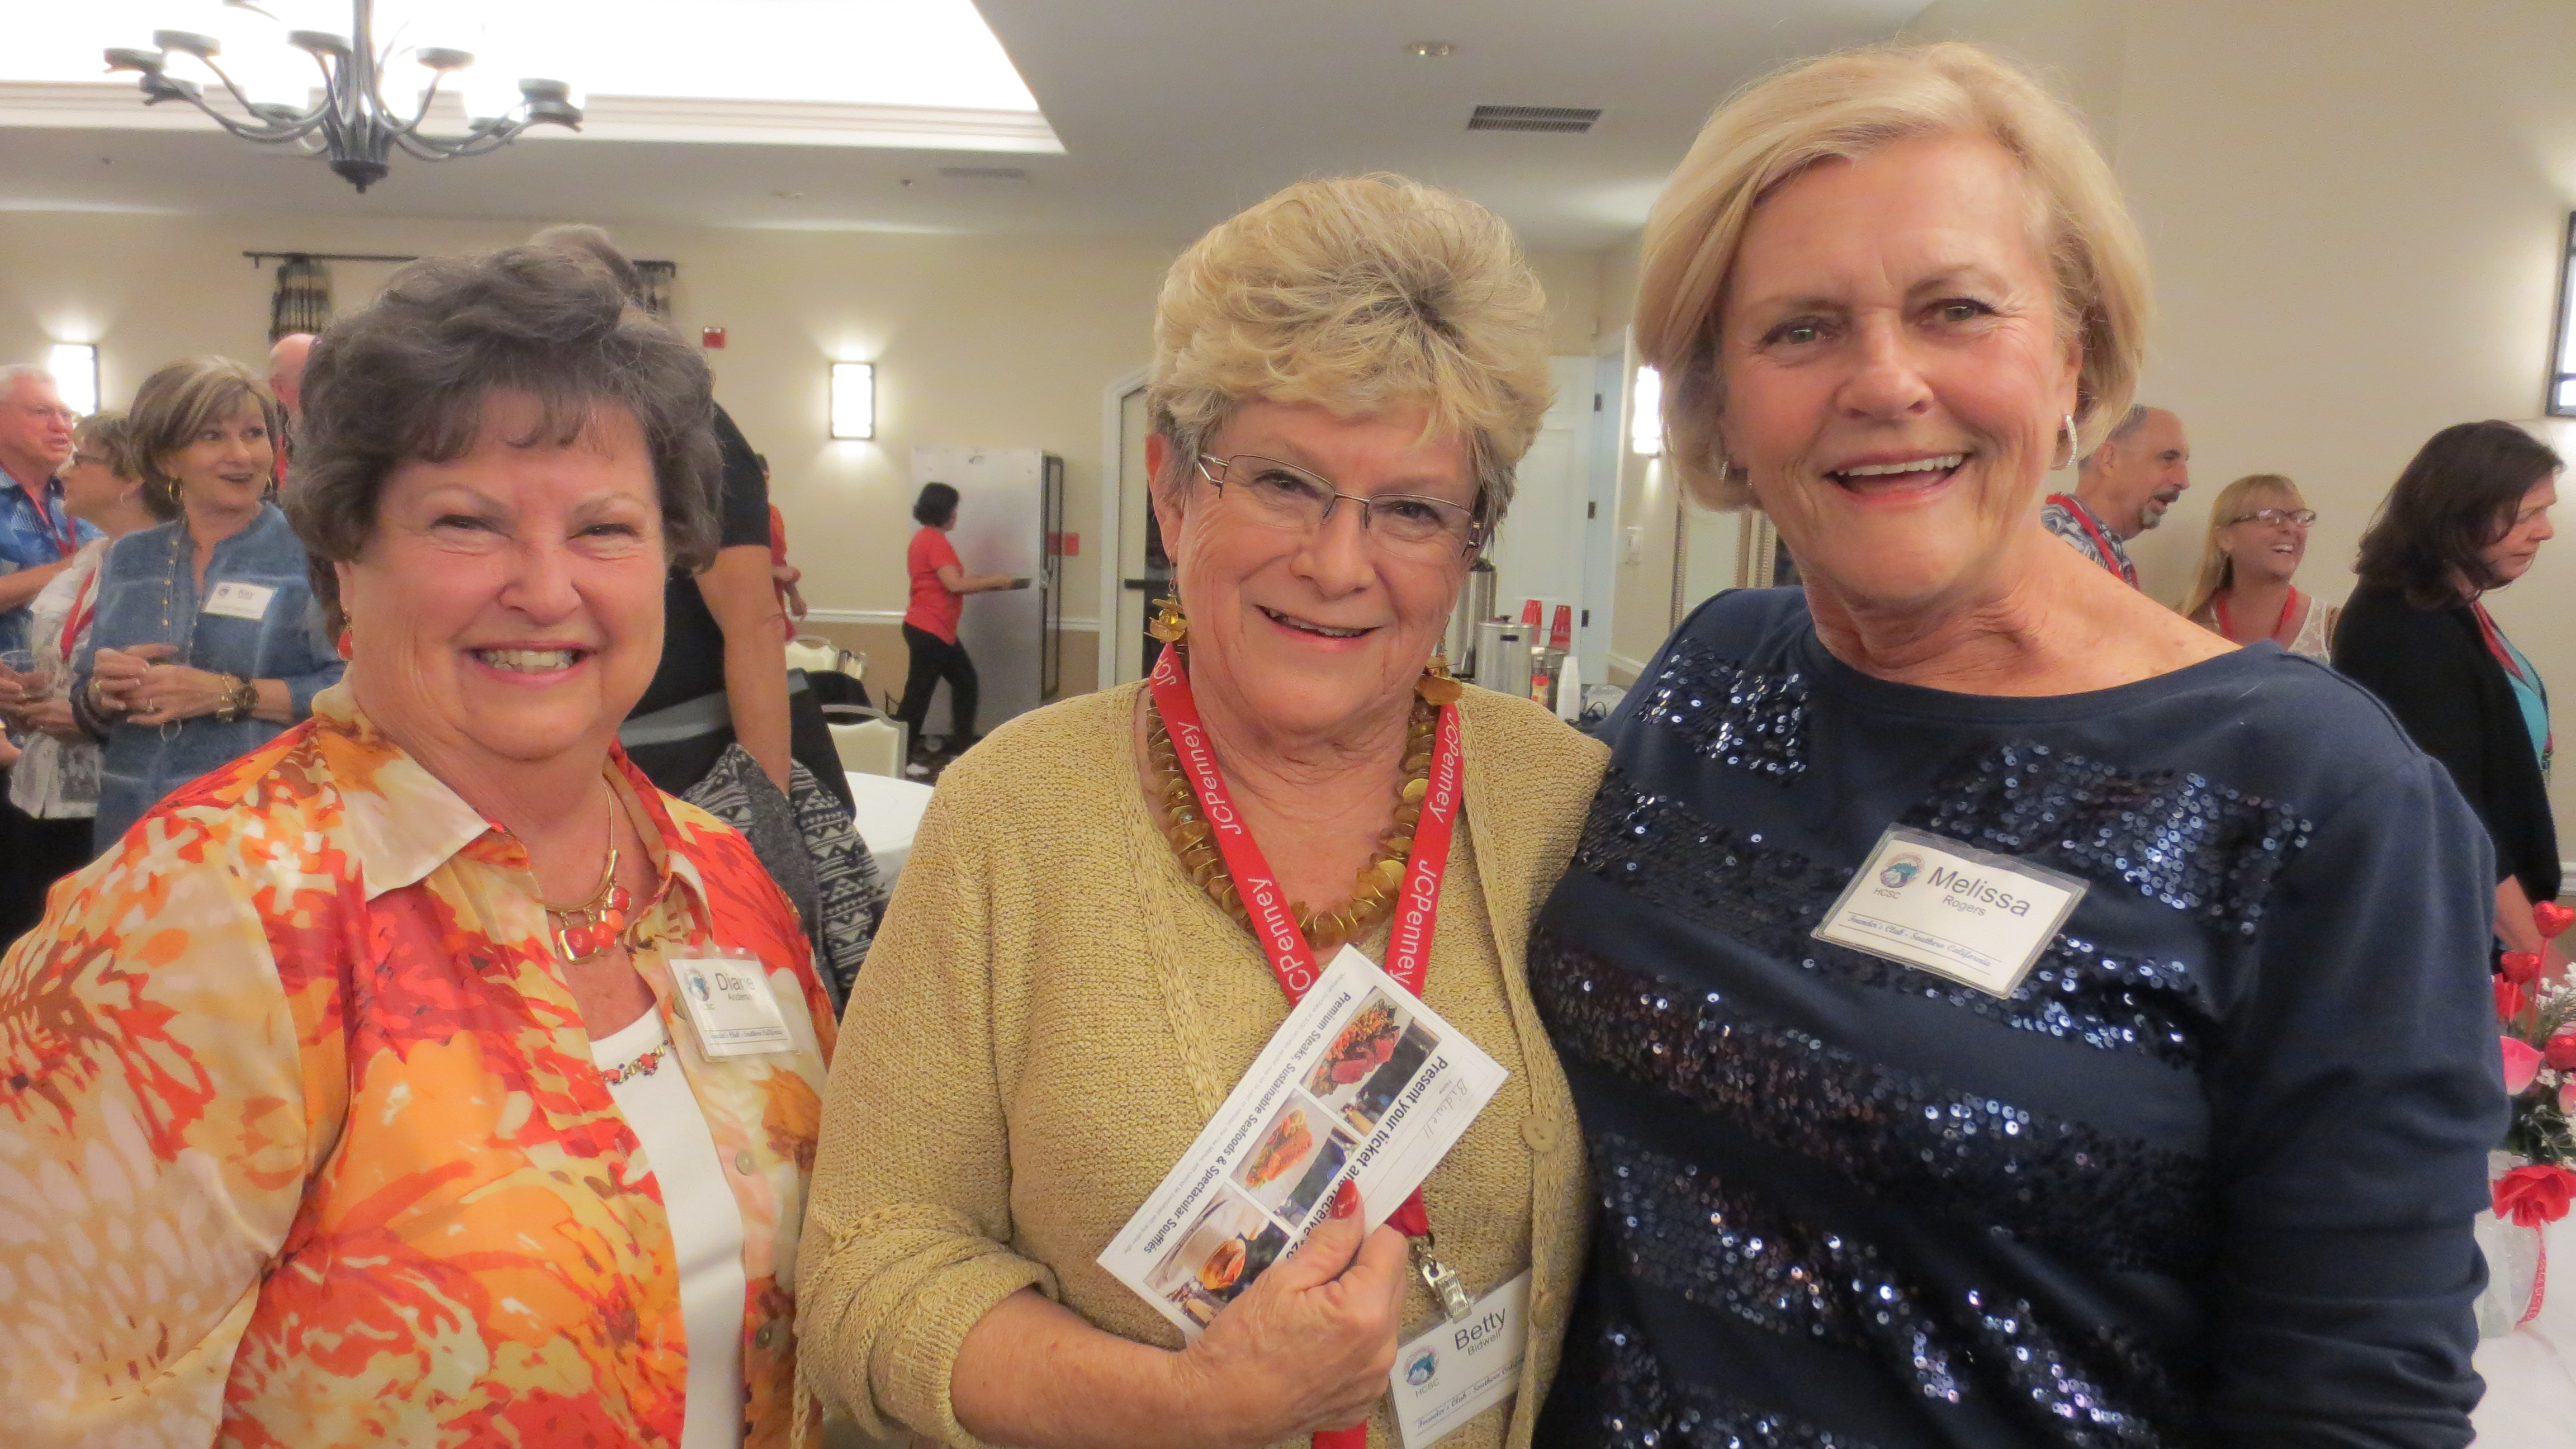 Diane Anderson, Betty Bidwell and Mo Rogers